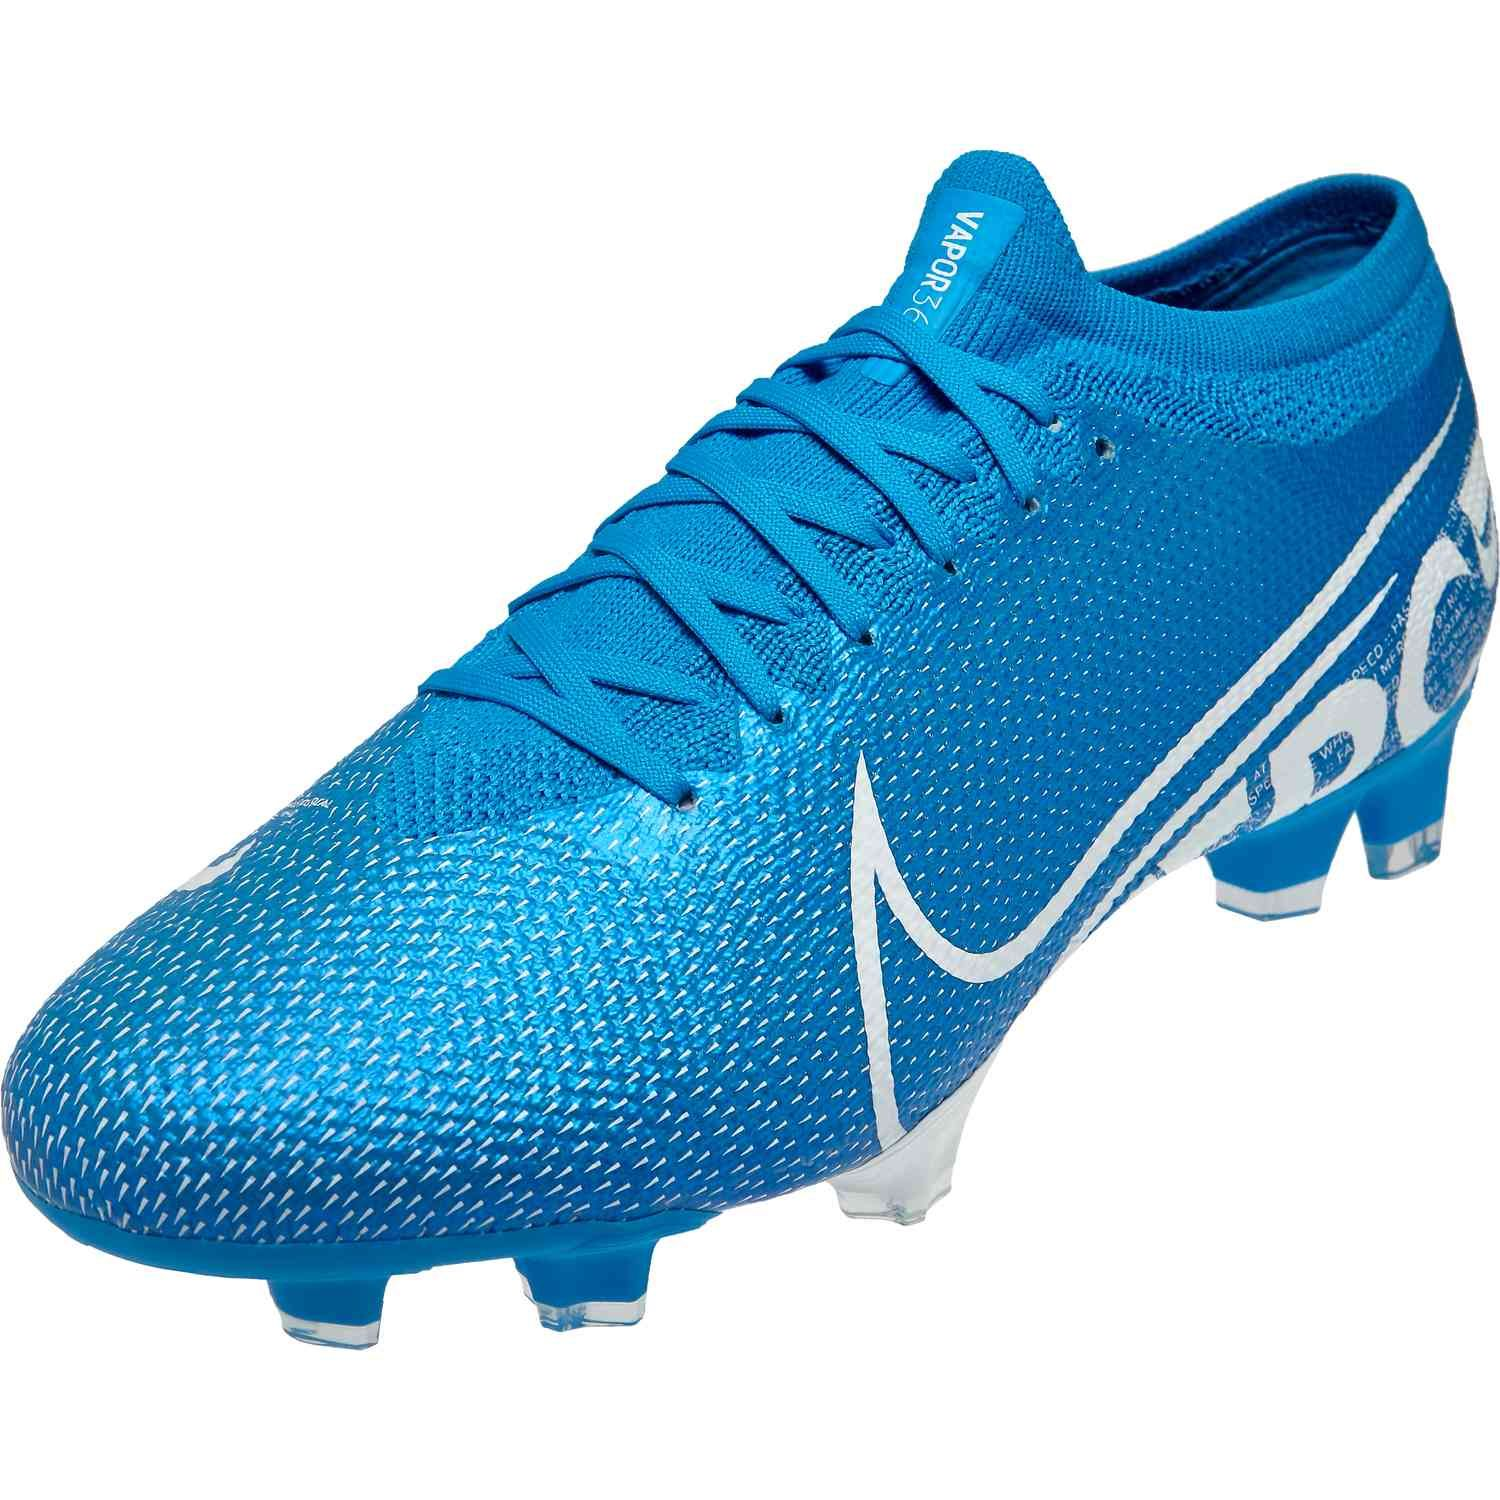 Nike Mercurial Vapor 13 Pro Fg New Lights Soccerpro Running Clothes Nike Adidas Soccer Shoes Nike